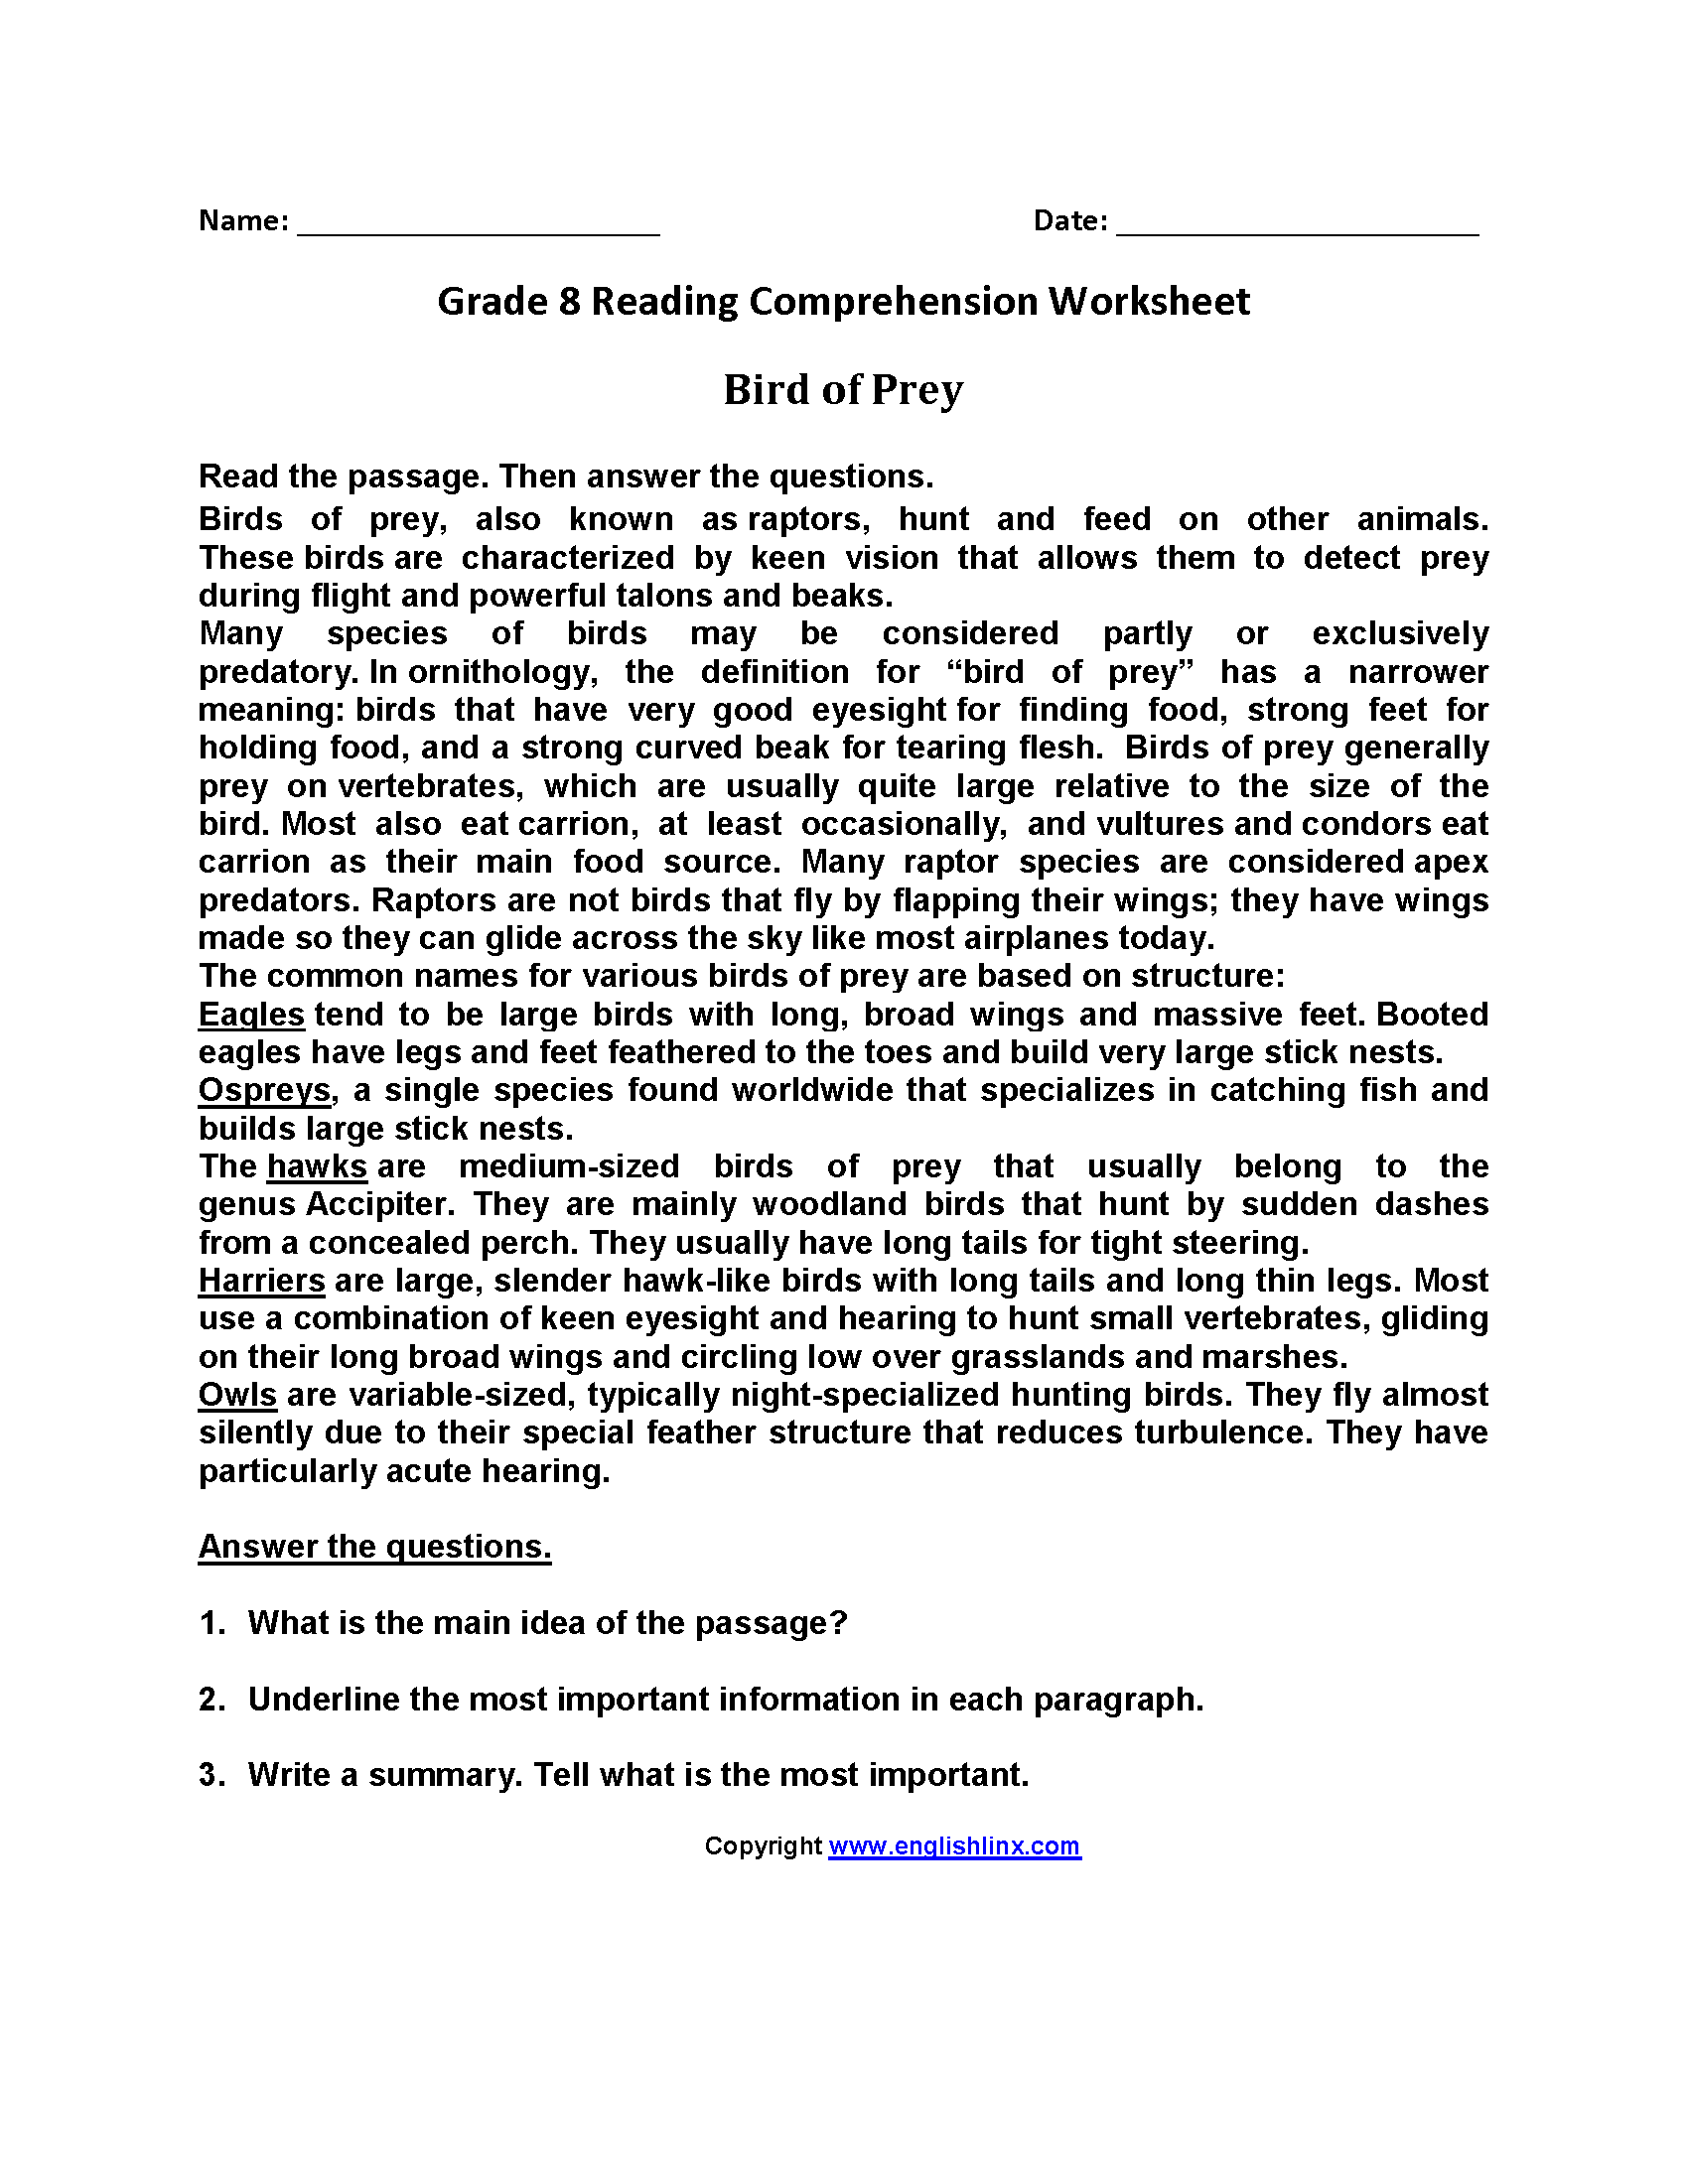 Worksheet Reading Comprehension Grade 8